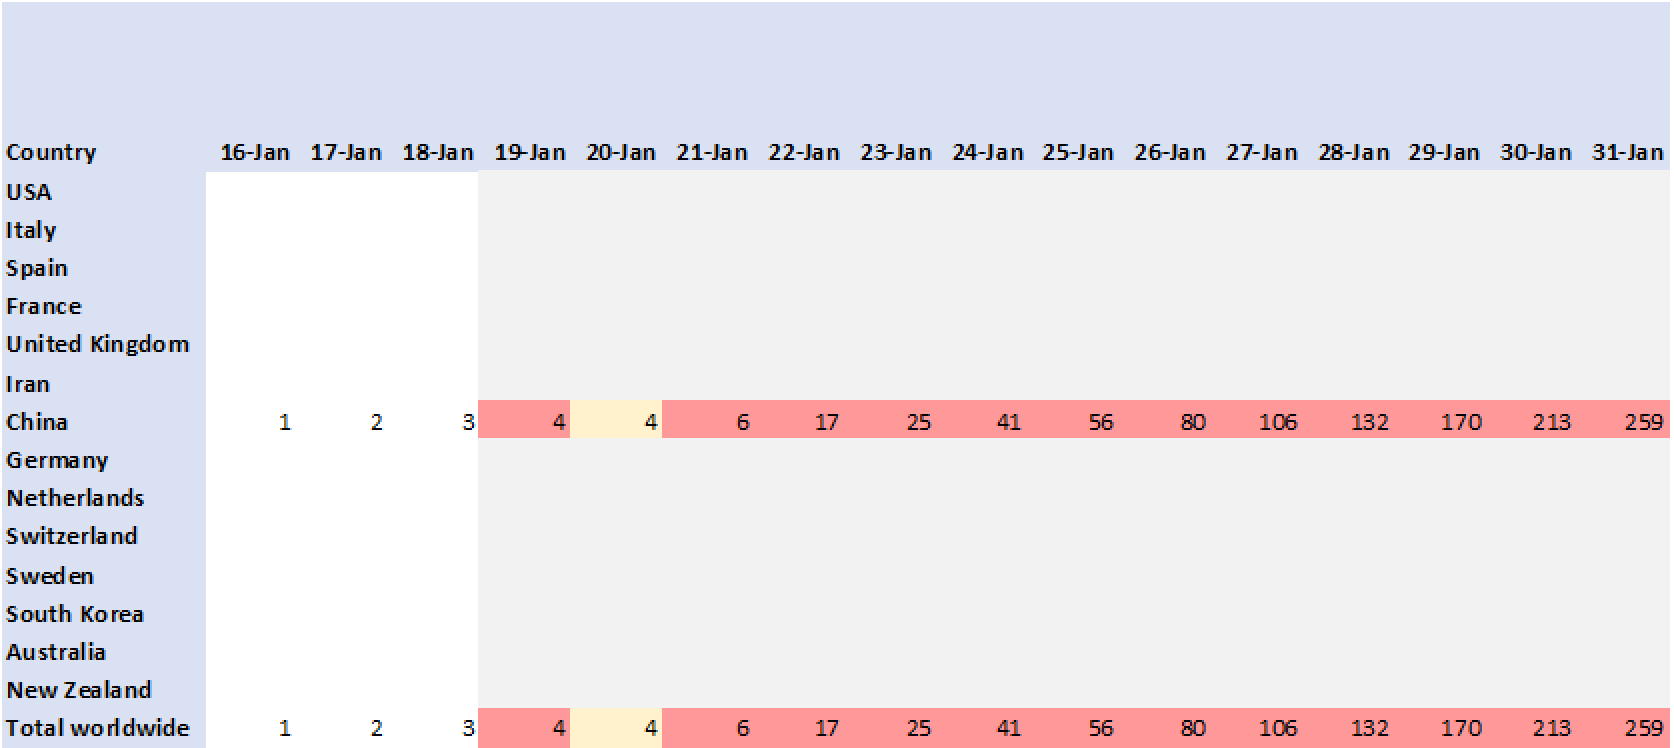 Outcome of death, period 16-Jan-2020 to 31-Jan-2020